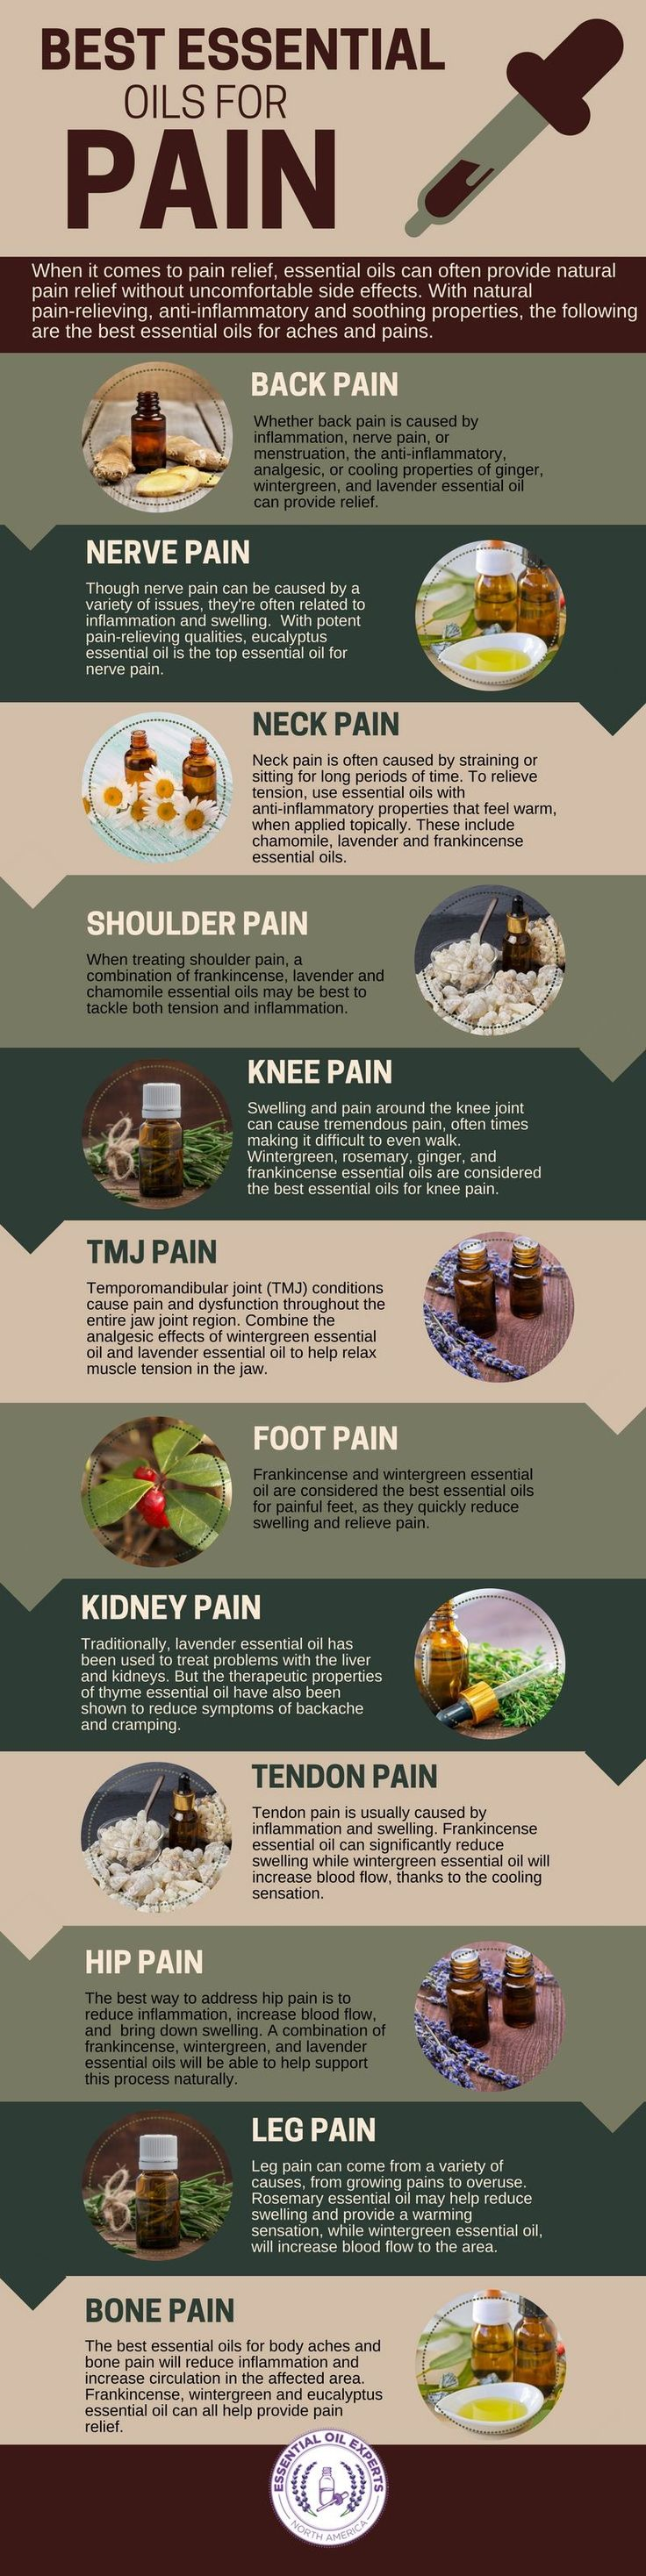 The most effective essential oils for pain including essential oils for back pain, joint pain, neck pain. Article breaks it down further...